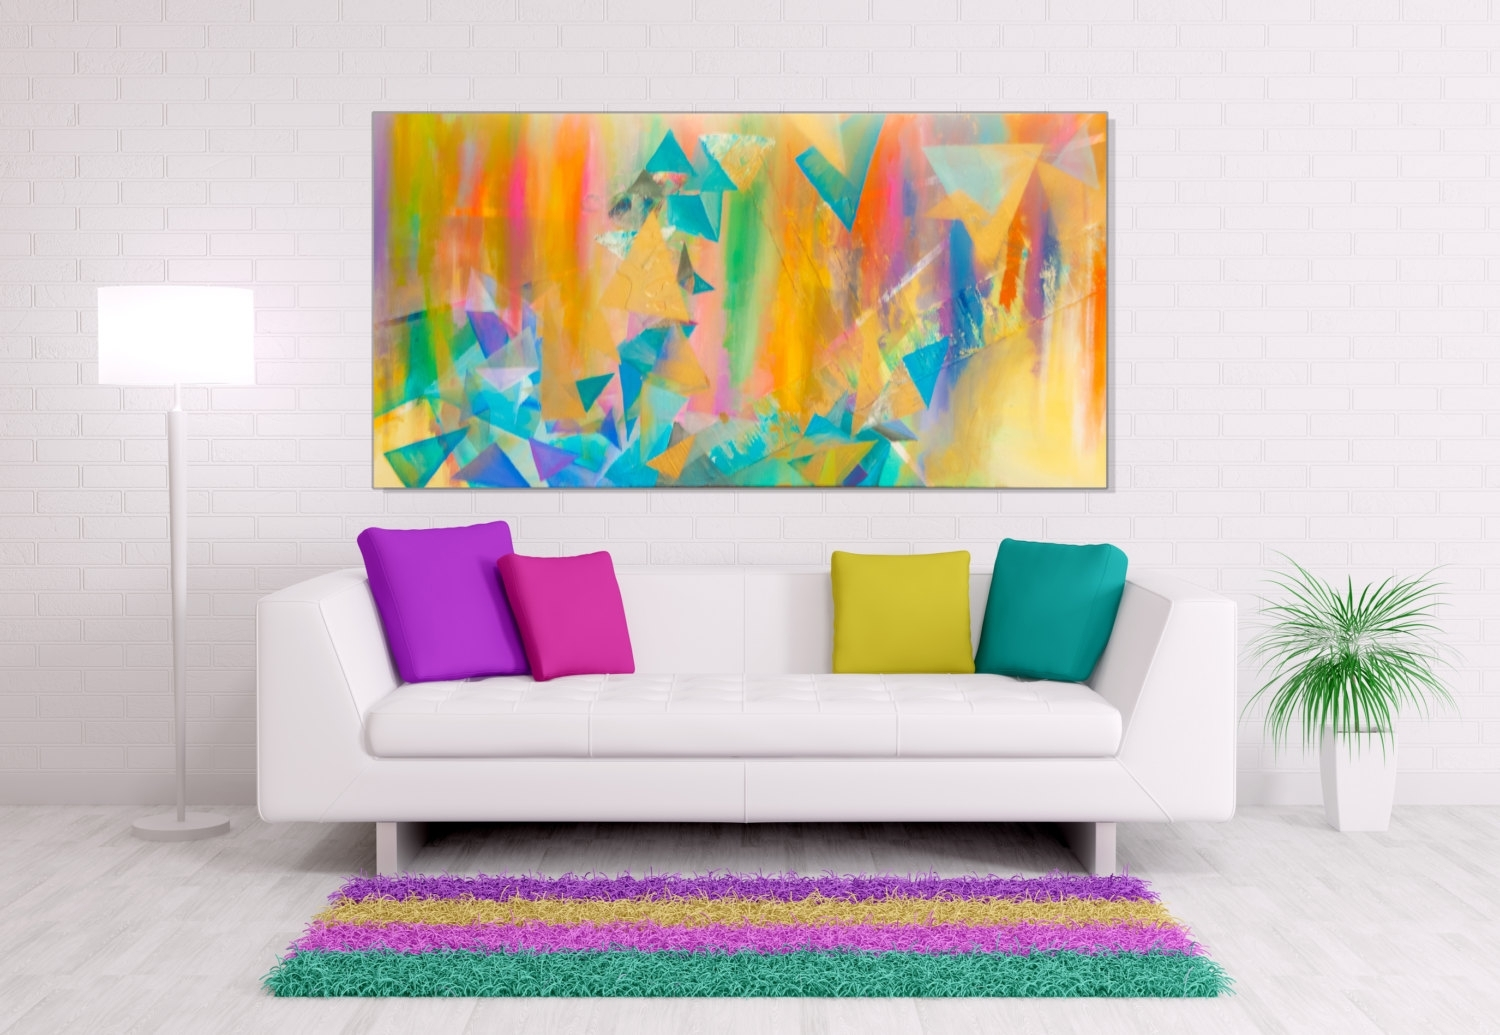 Wall Art: Best Sample Ideas Bright Wall Art Bright Colored Artwork Within Most Up To Date Colourful Abstract Wall Art (View 20 of 20)